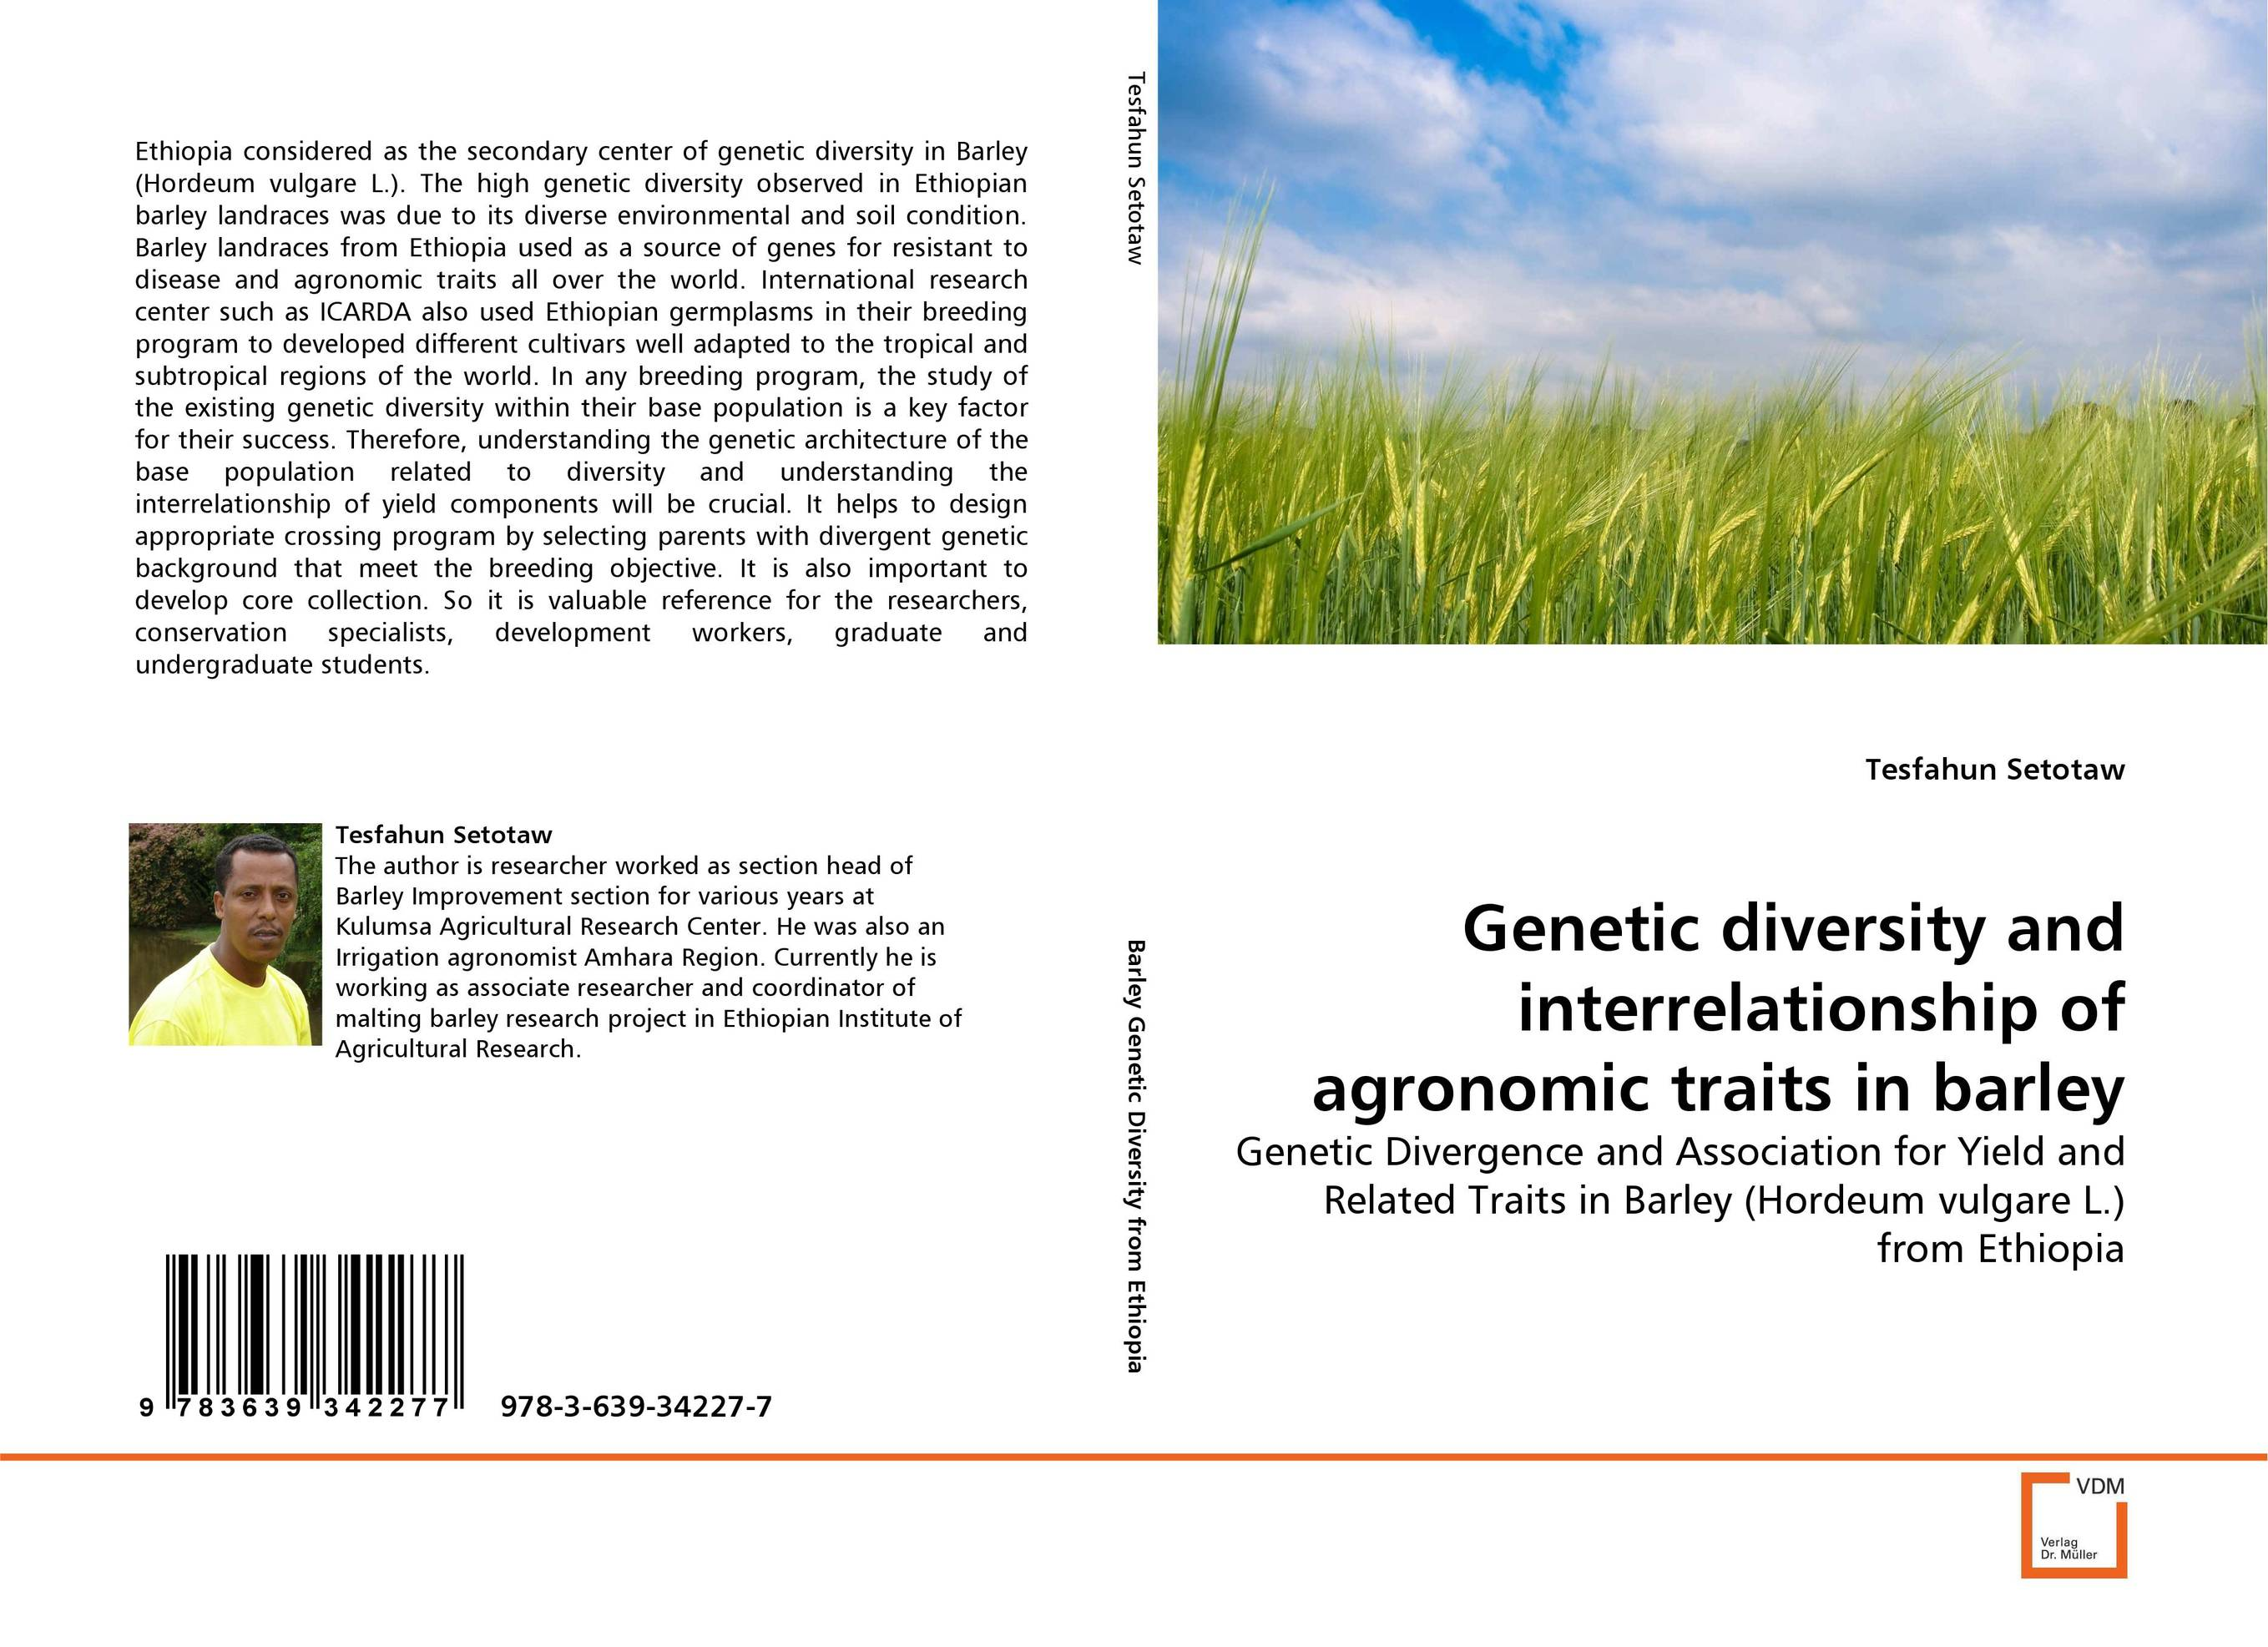 Genetic diversity and interrelationship of agronomic traits in barley genetic diversity in linseed